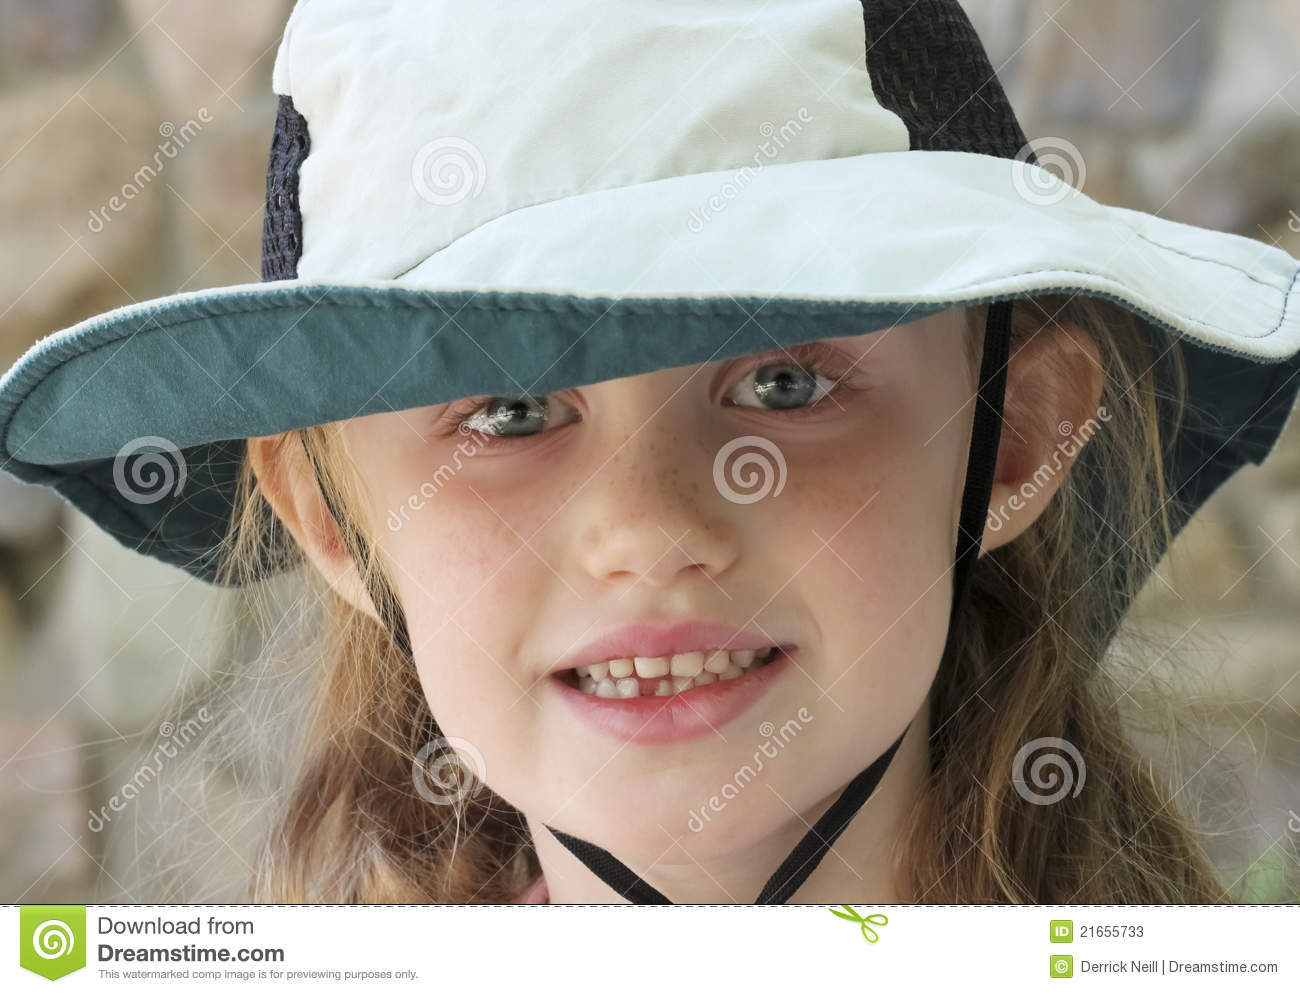 a98ee7ad114 A Little Girl With Blue Eyes And A Floppy Sun Hat Stock Image ...